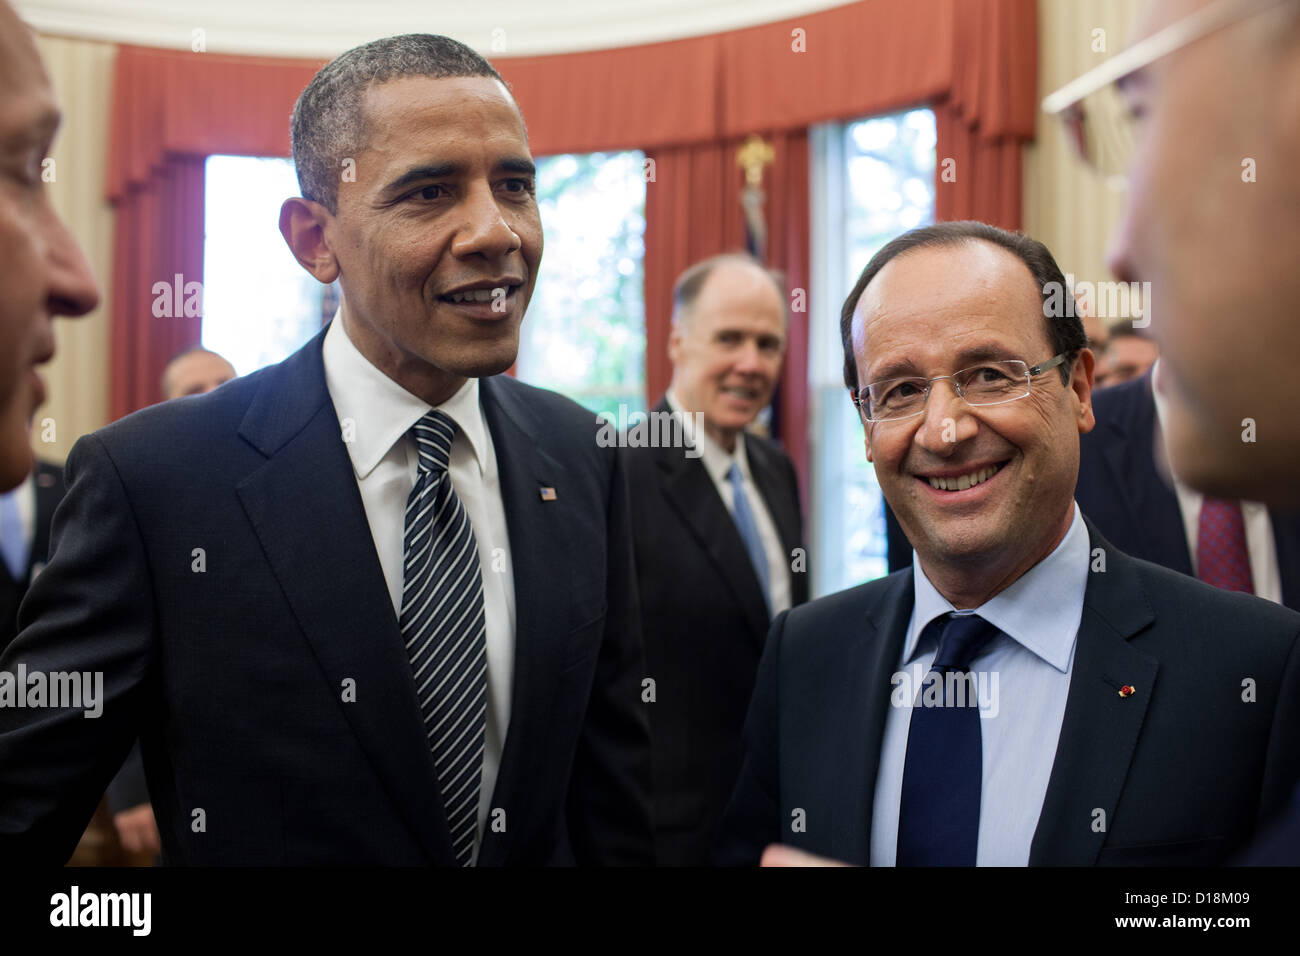 President Barack Obama and President François Hollande of France, with interpreters, hold a discussion following - Stock Image